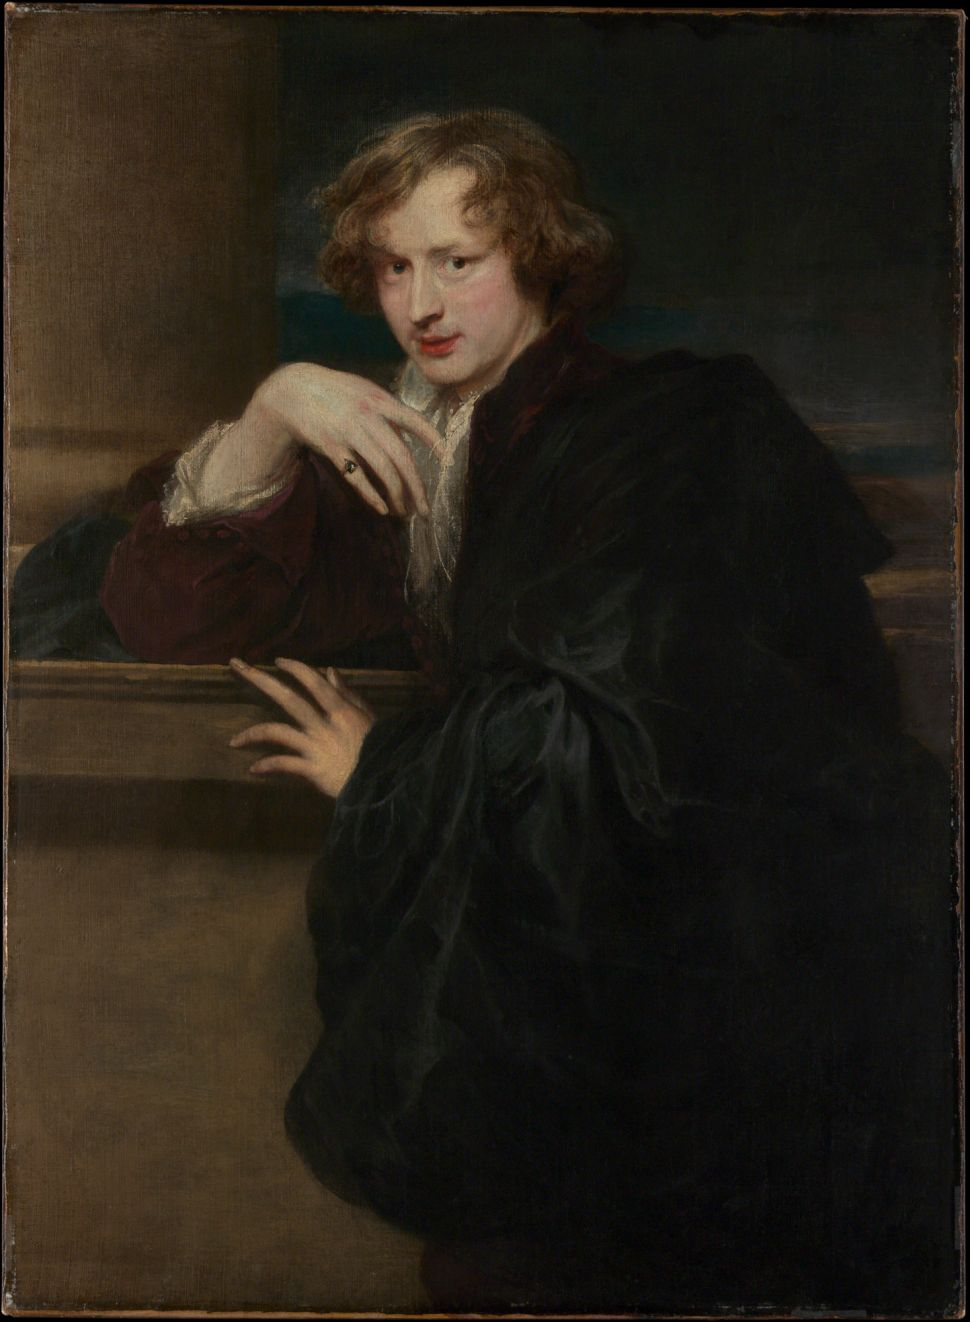 A Baroque Genius at the Frick Collection